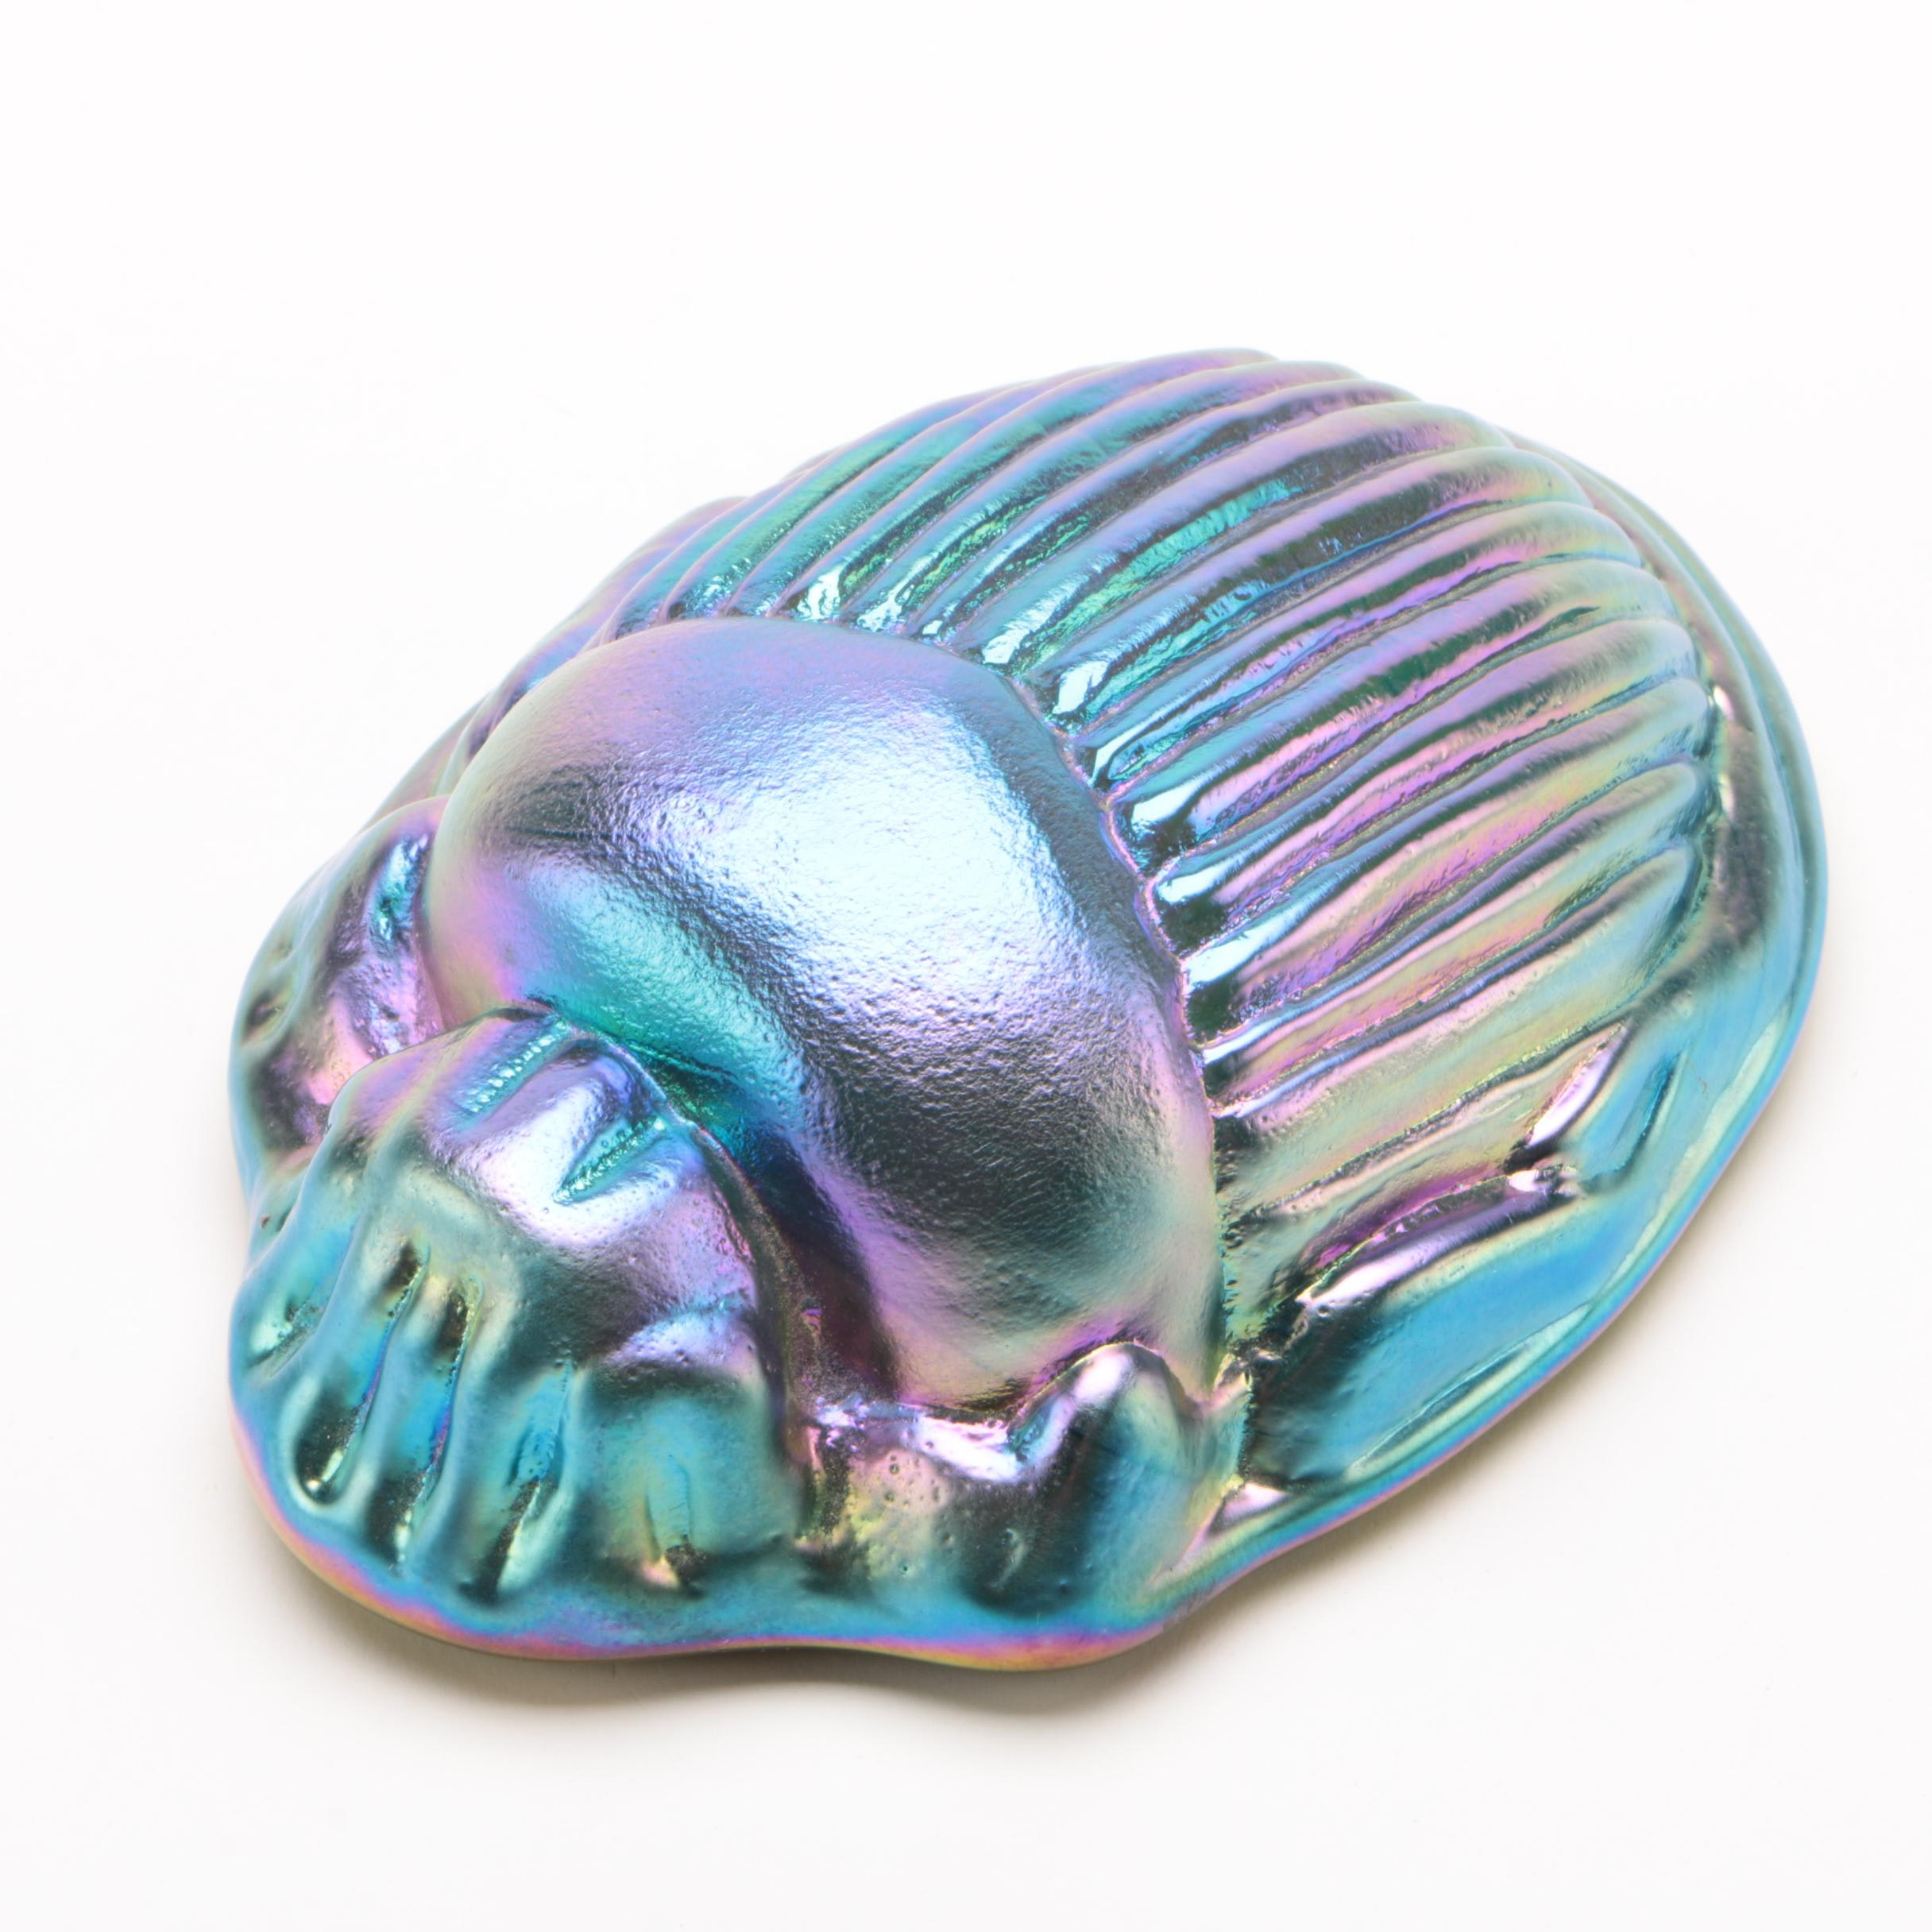 Tiffany Inspired Blue Iridescent Glass Scarab Paperweight